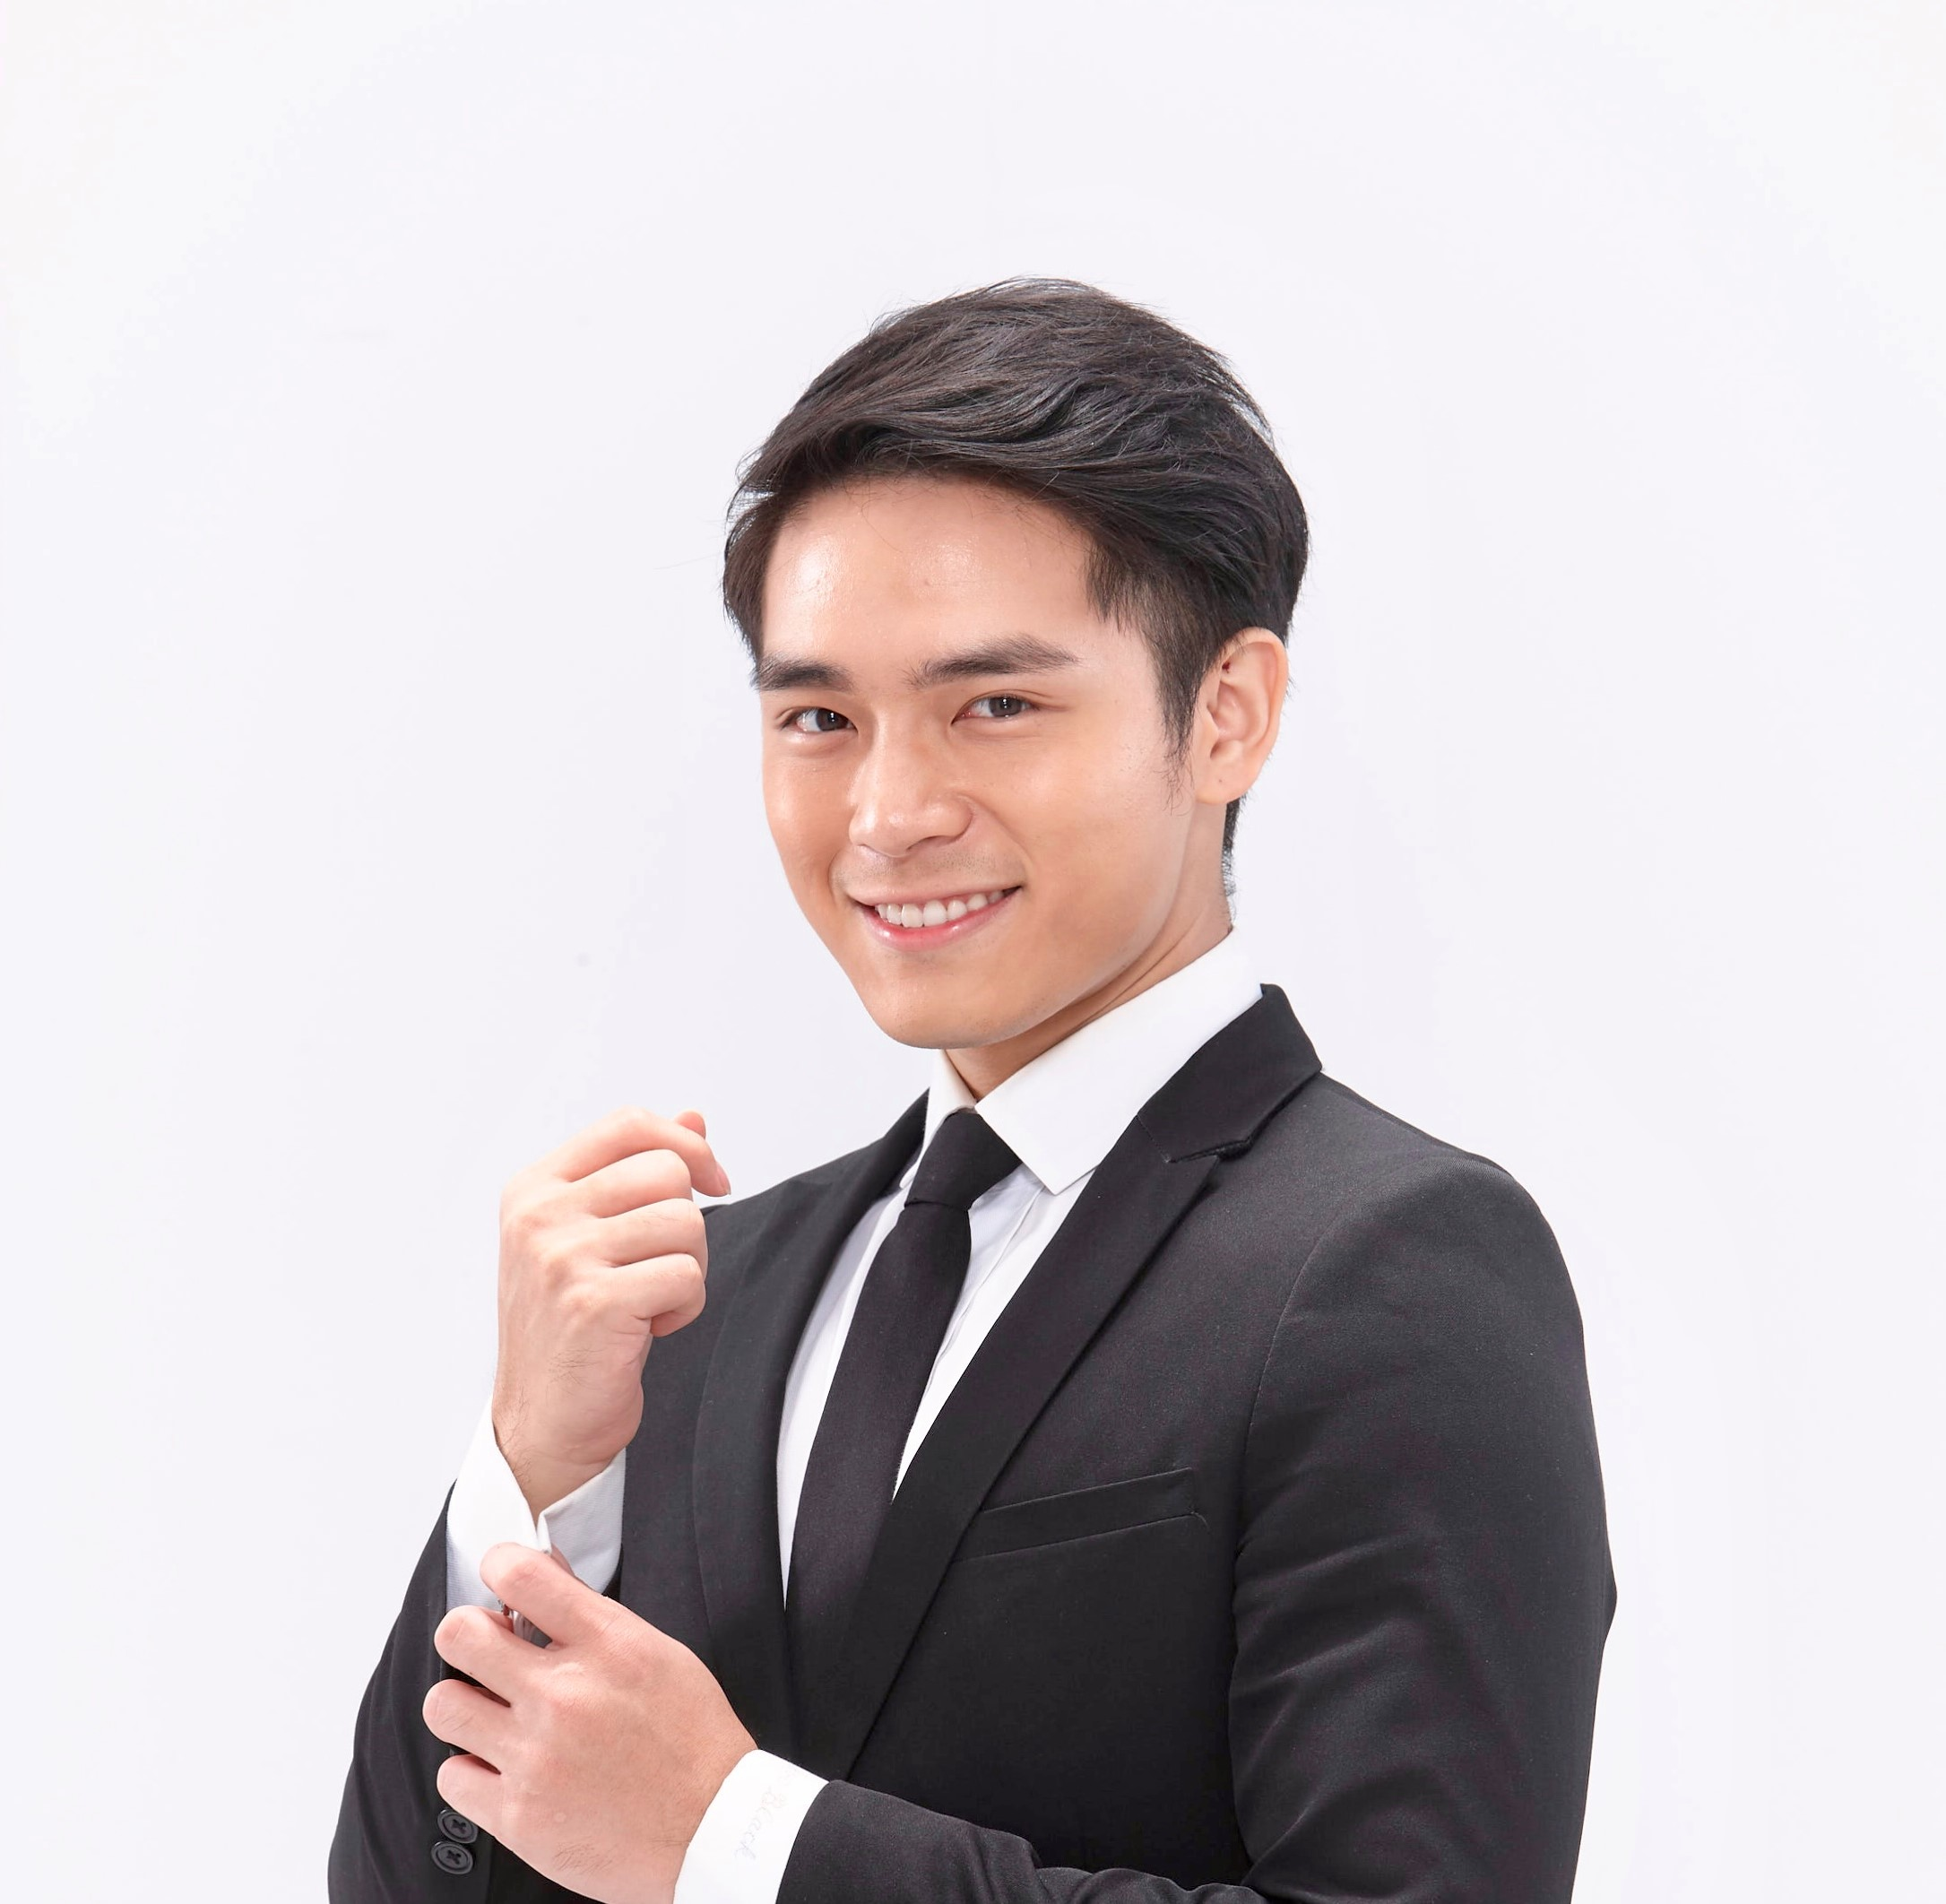 INTERVIEW WITH ACTOR JOE BLACK CHOU